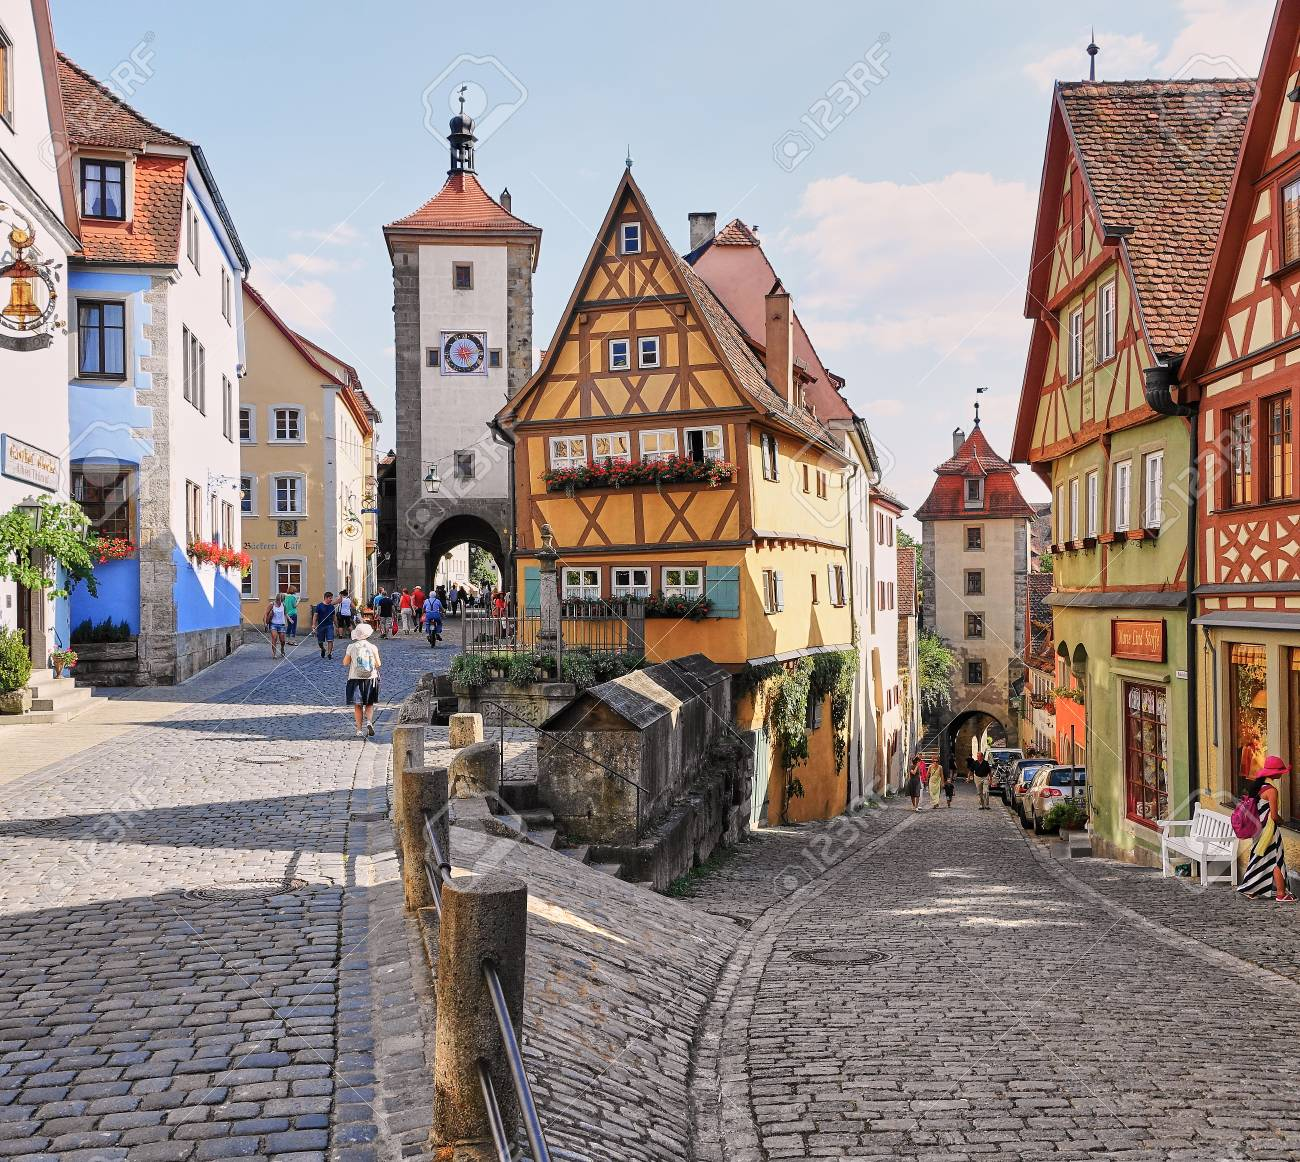 """Rothenburg, Germany - Aug 2015: Most photographed house in Germany the """"Plonlein"""" half timbered Ginger Bread Home. - 125989071"""